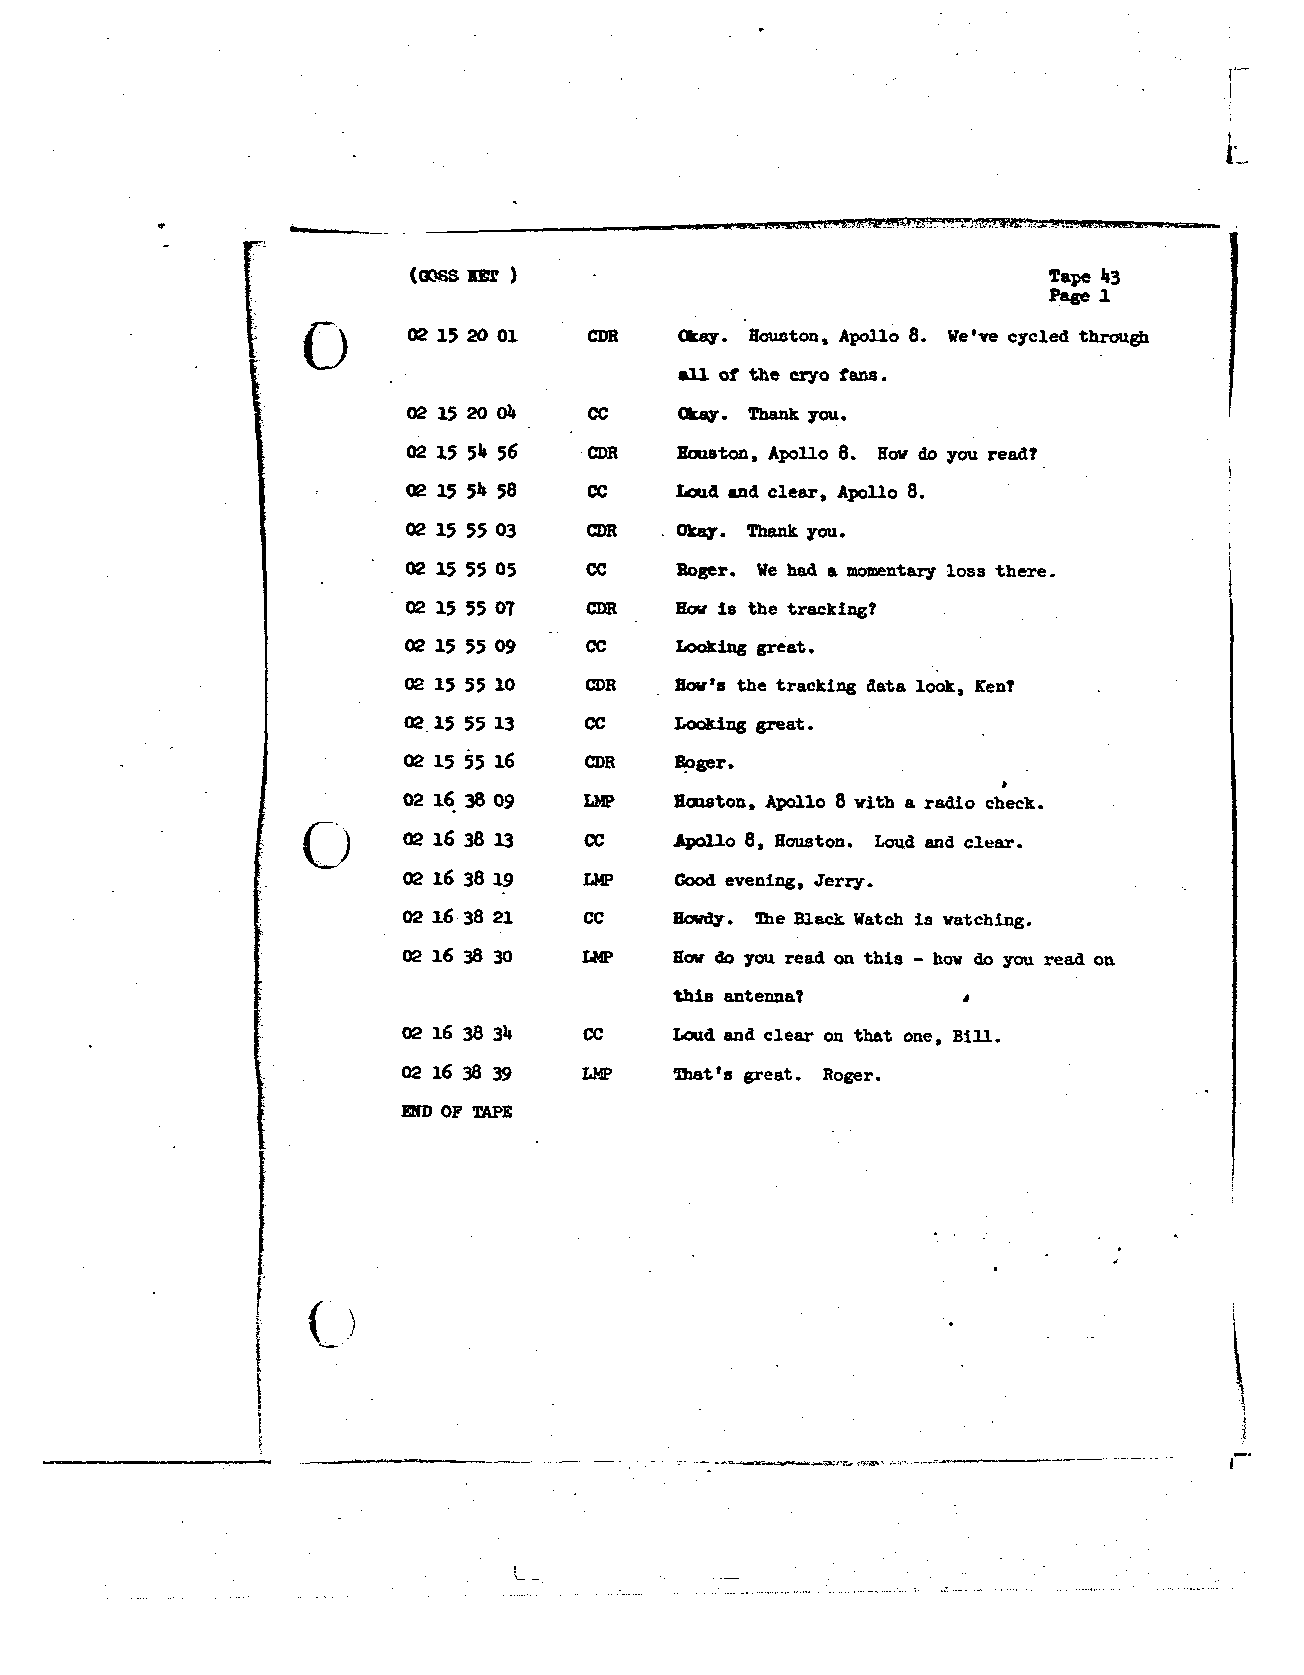 Page 336 of Apollo 8's original transcript